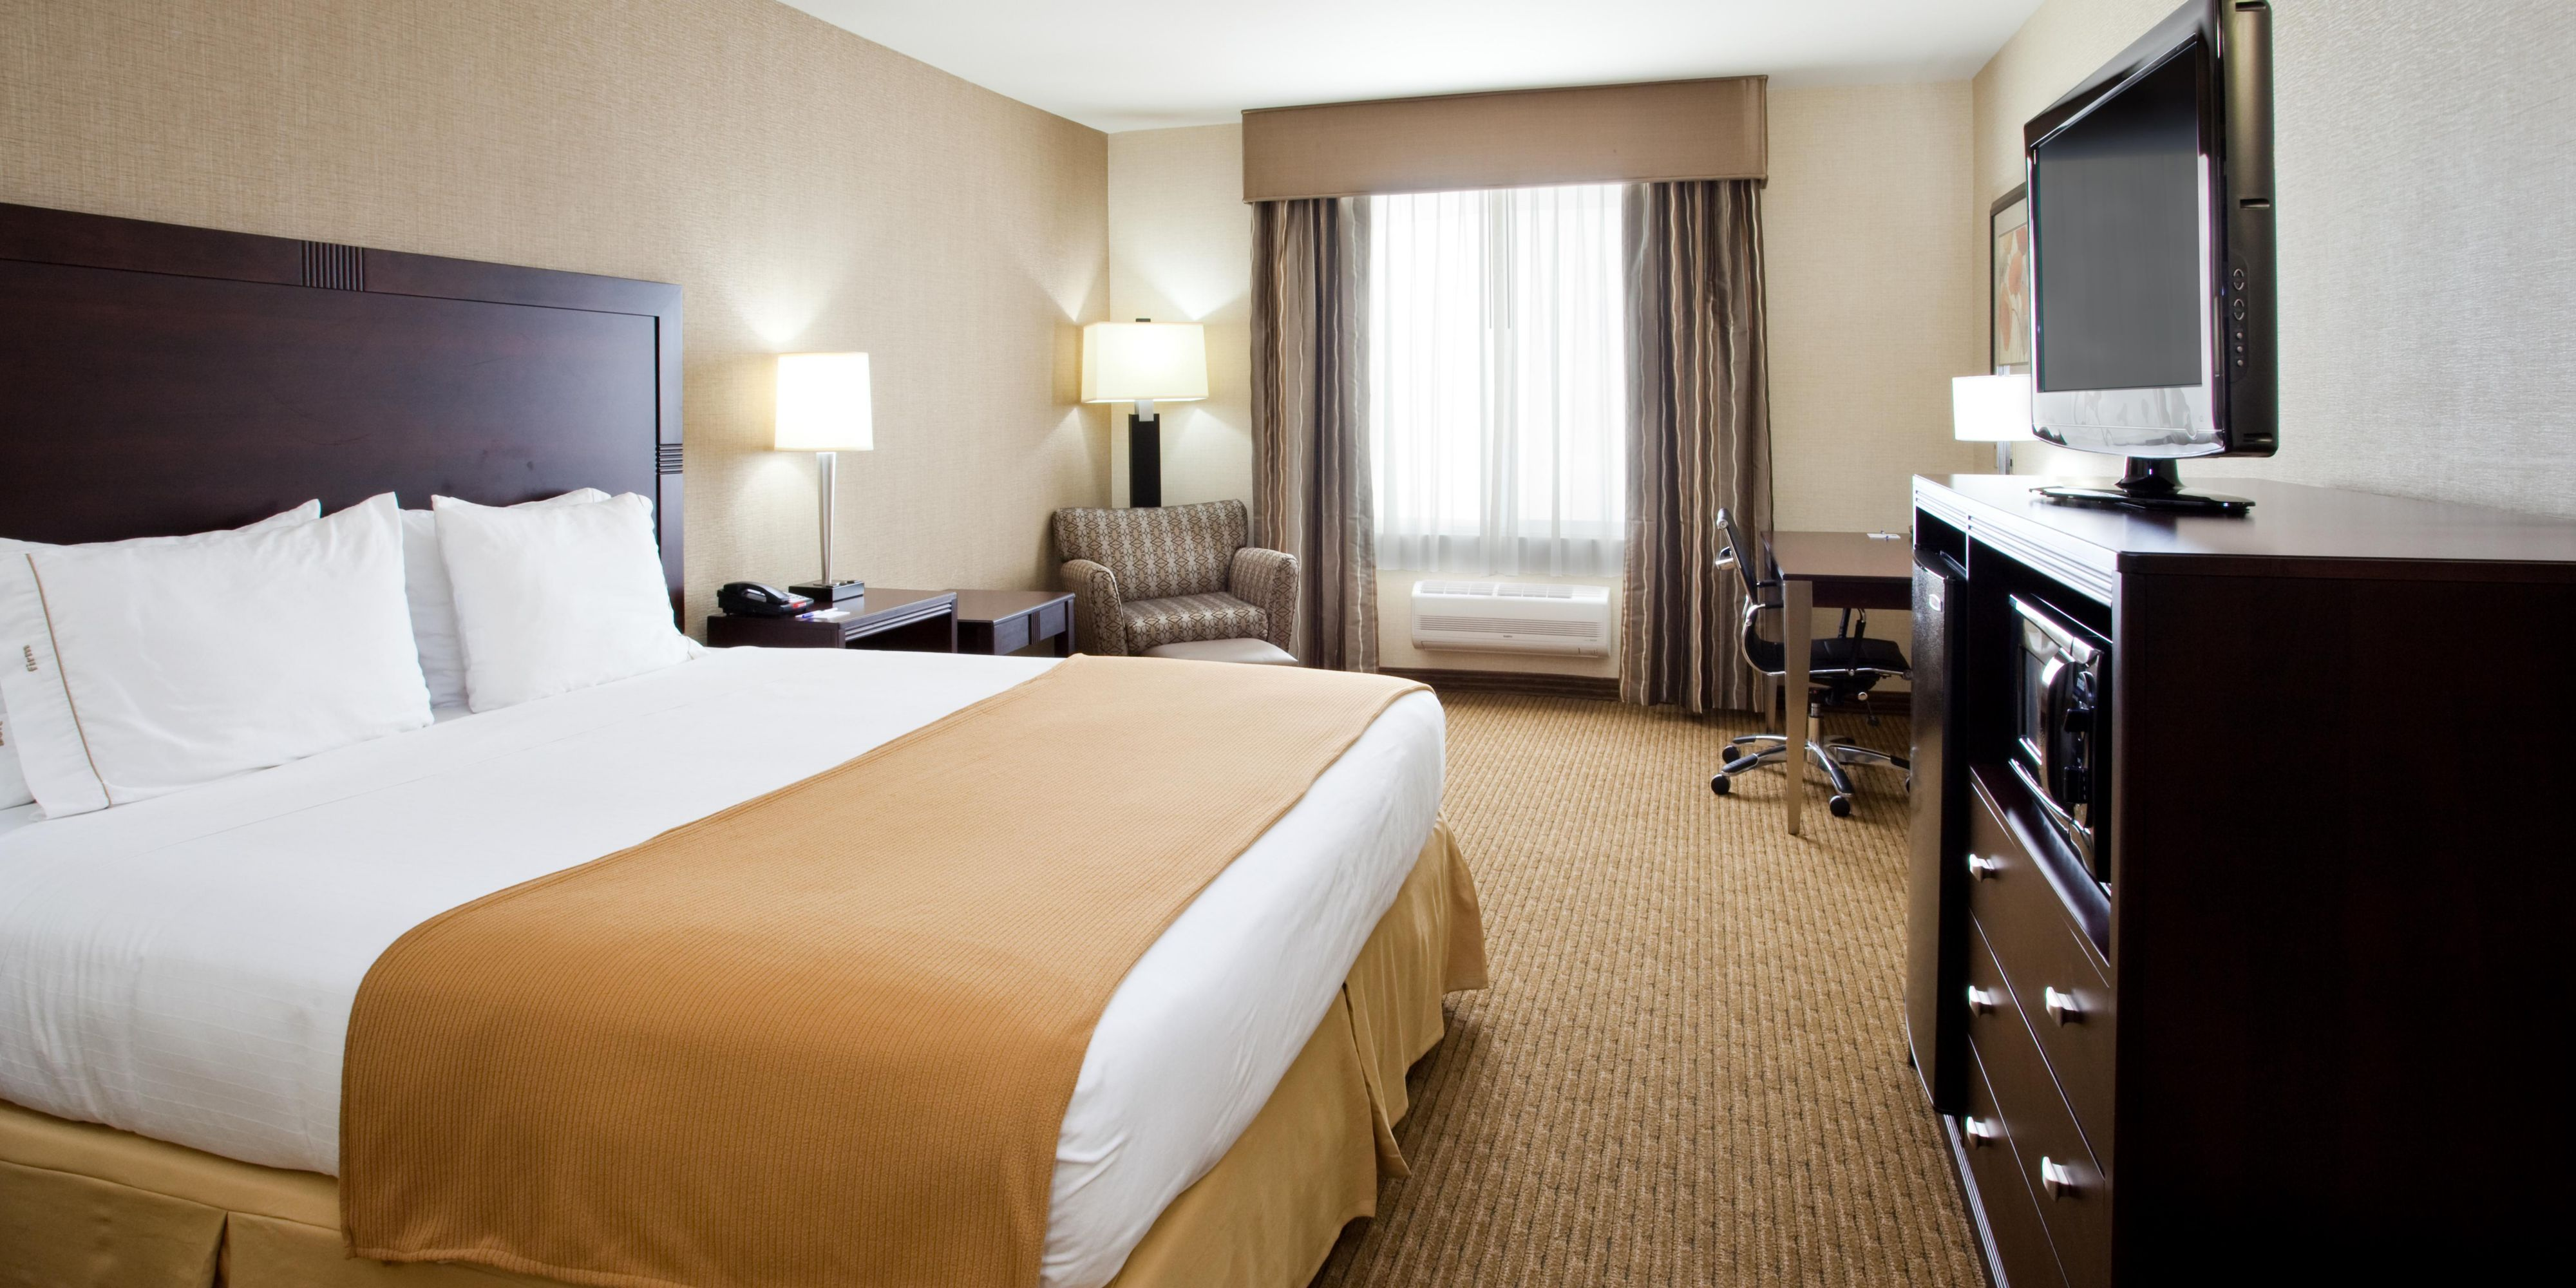 Holiday Inn Express And Suites Fresno 2533188186 2x1